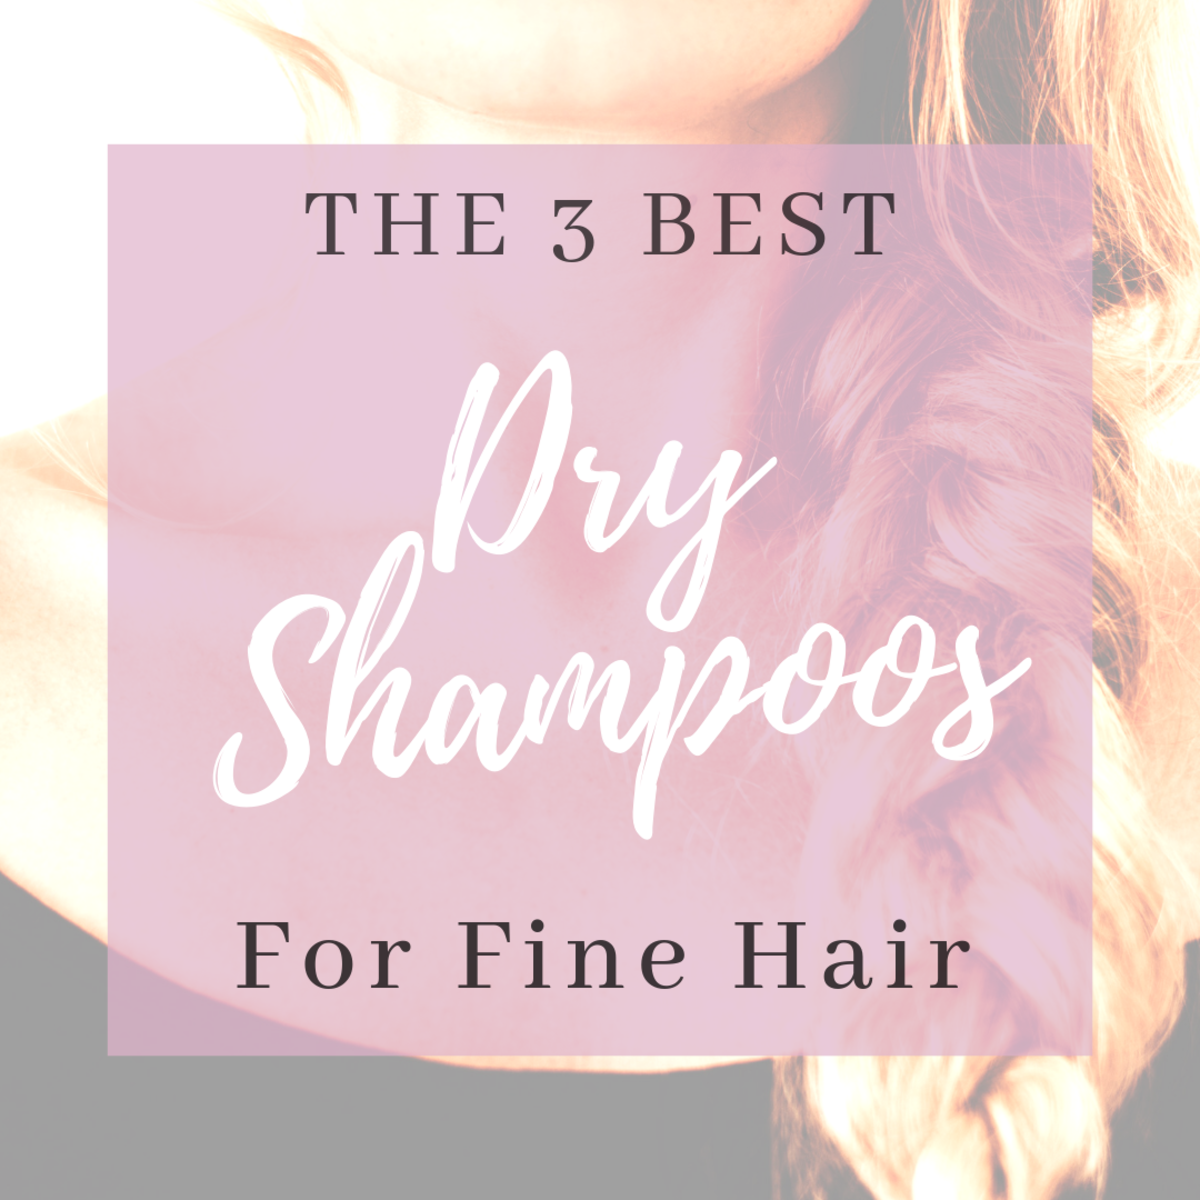 The 3 Best Dry Shampoos for Fine Hair